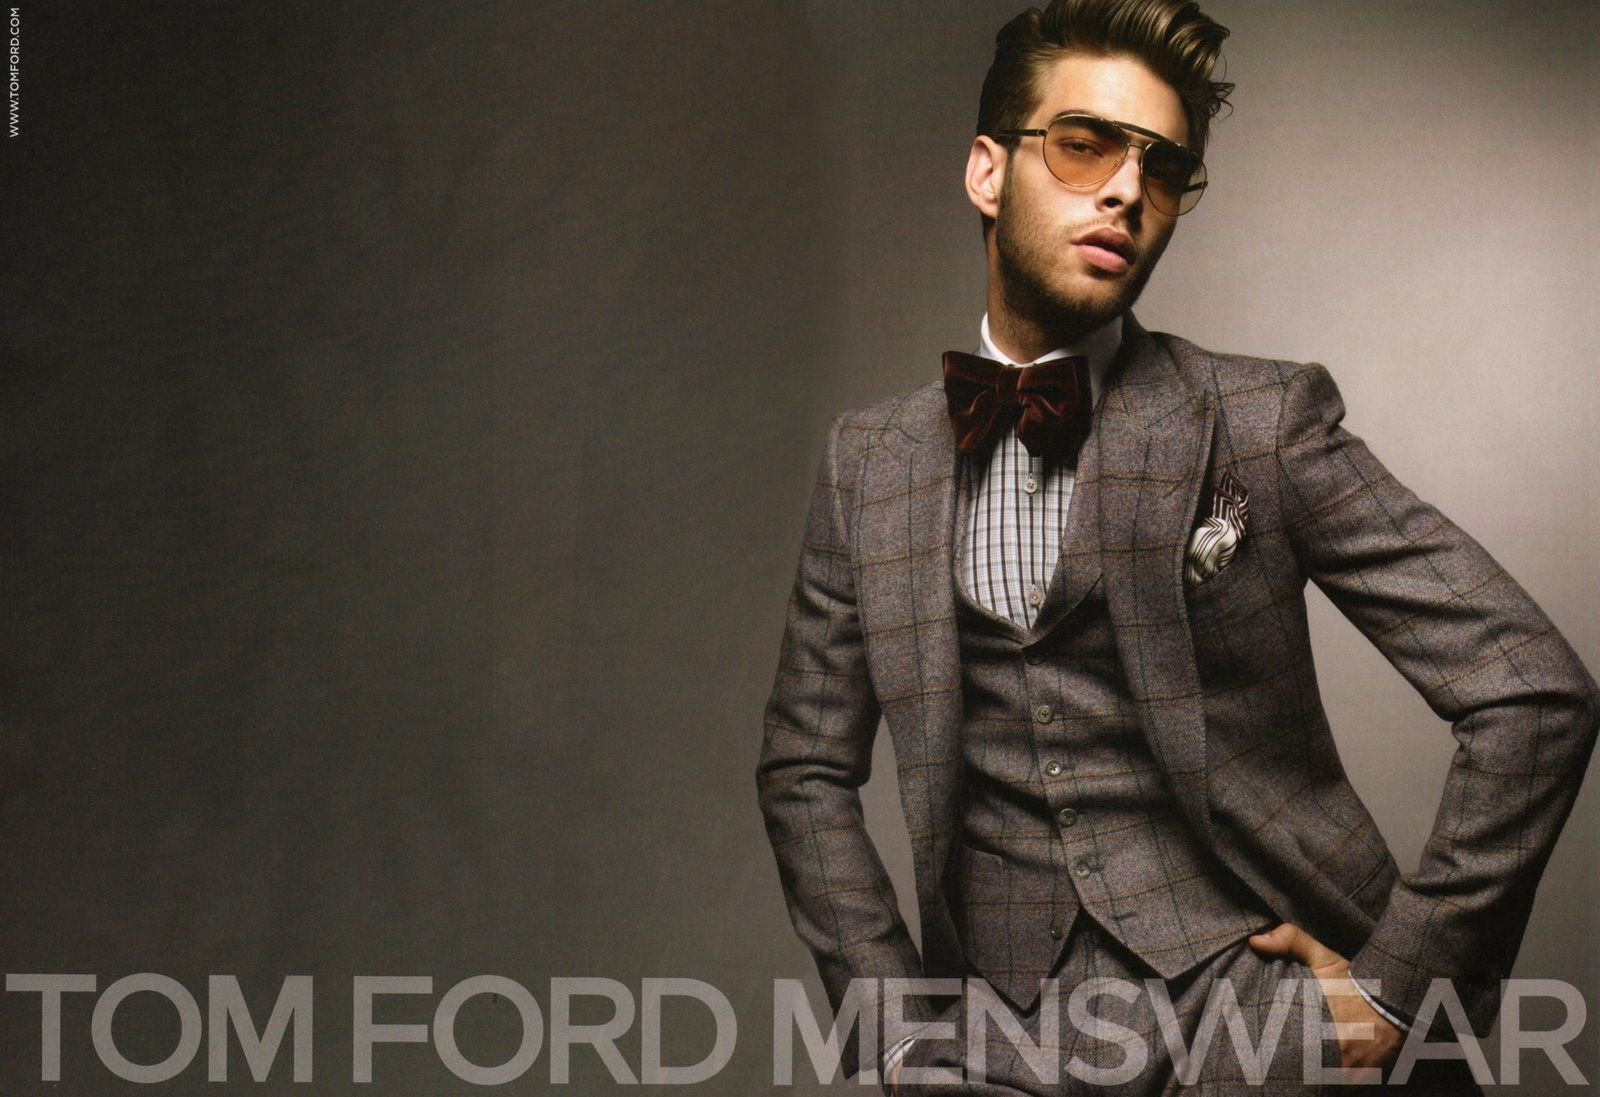 Tom Ford clothing for men   08  Tom Ford Menswear Ad Campaign   Boys ... 4fe8077fd1a9